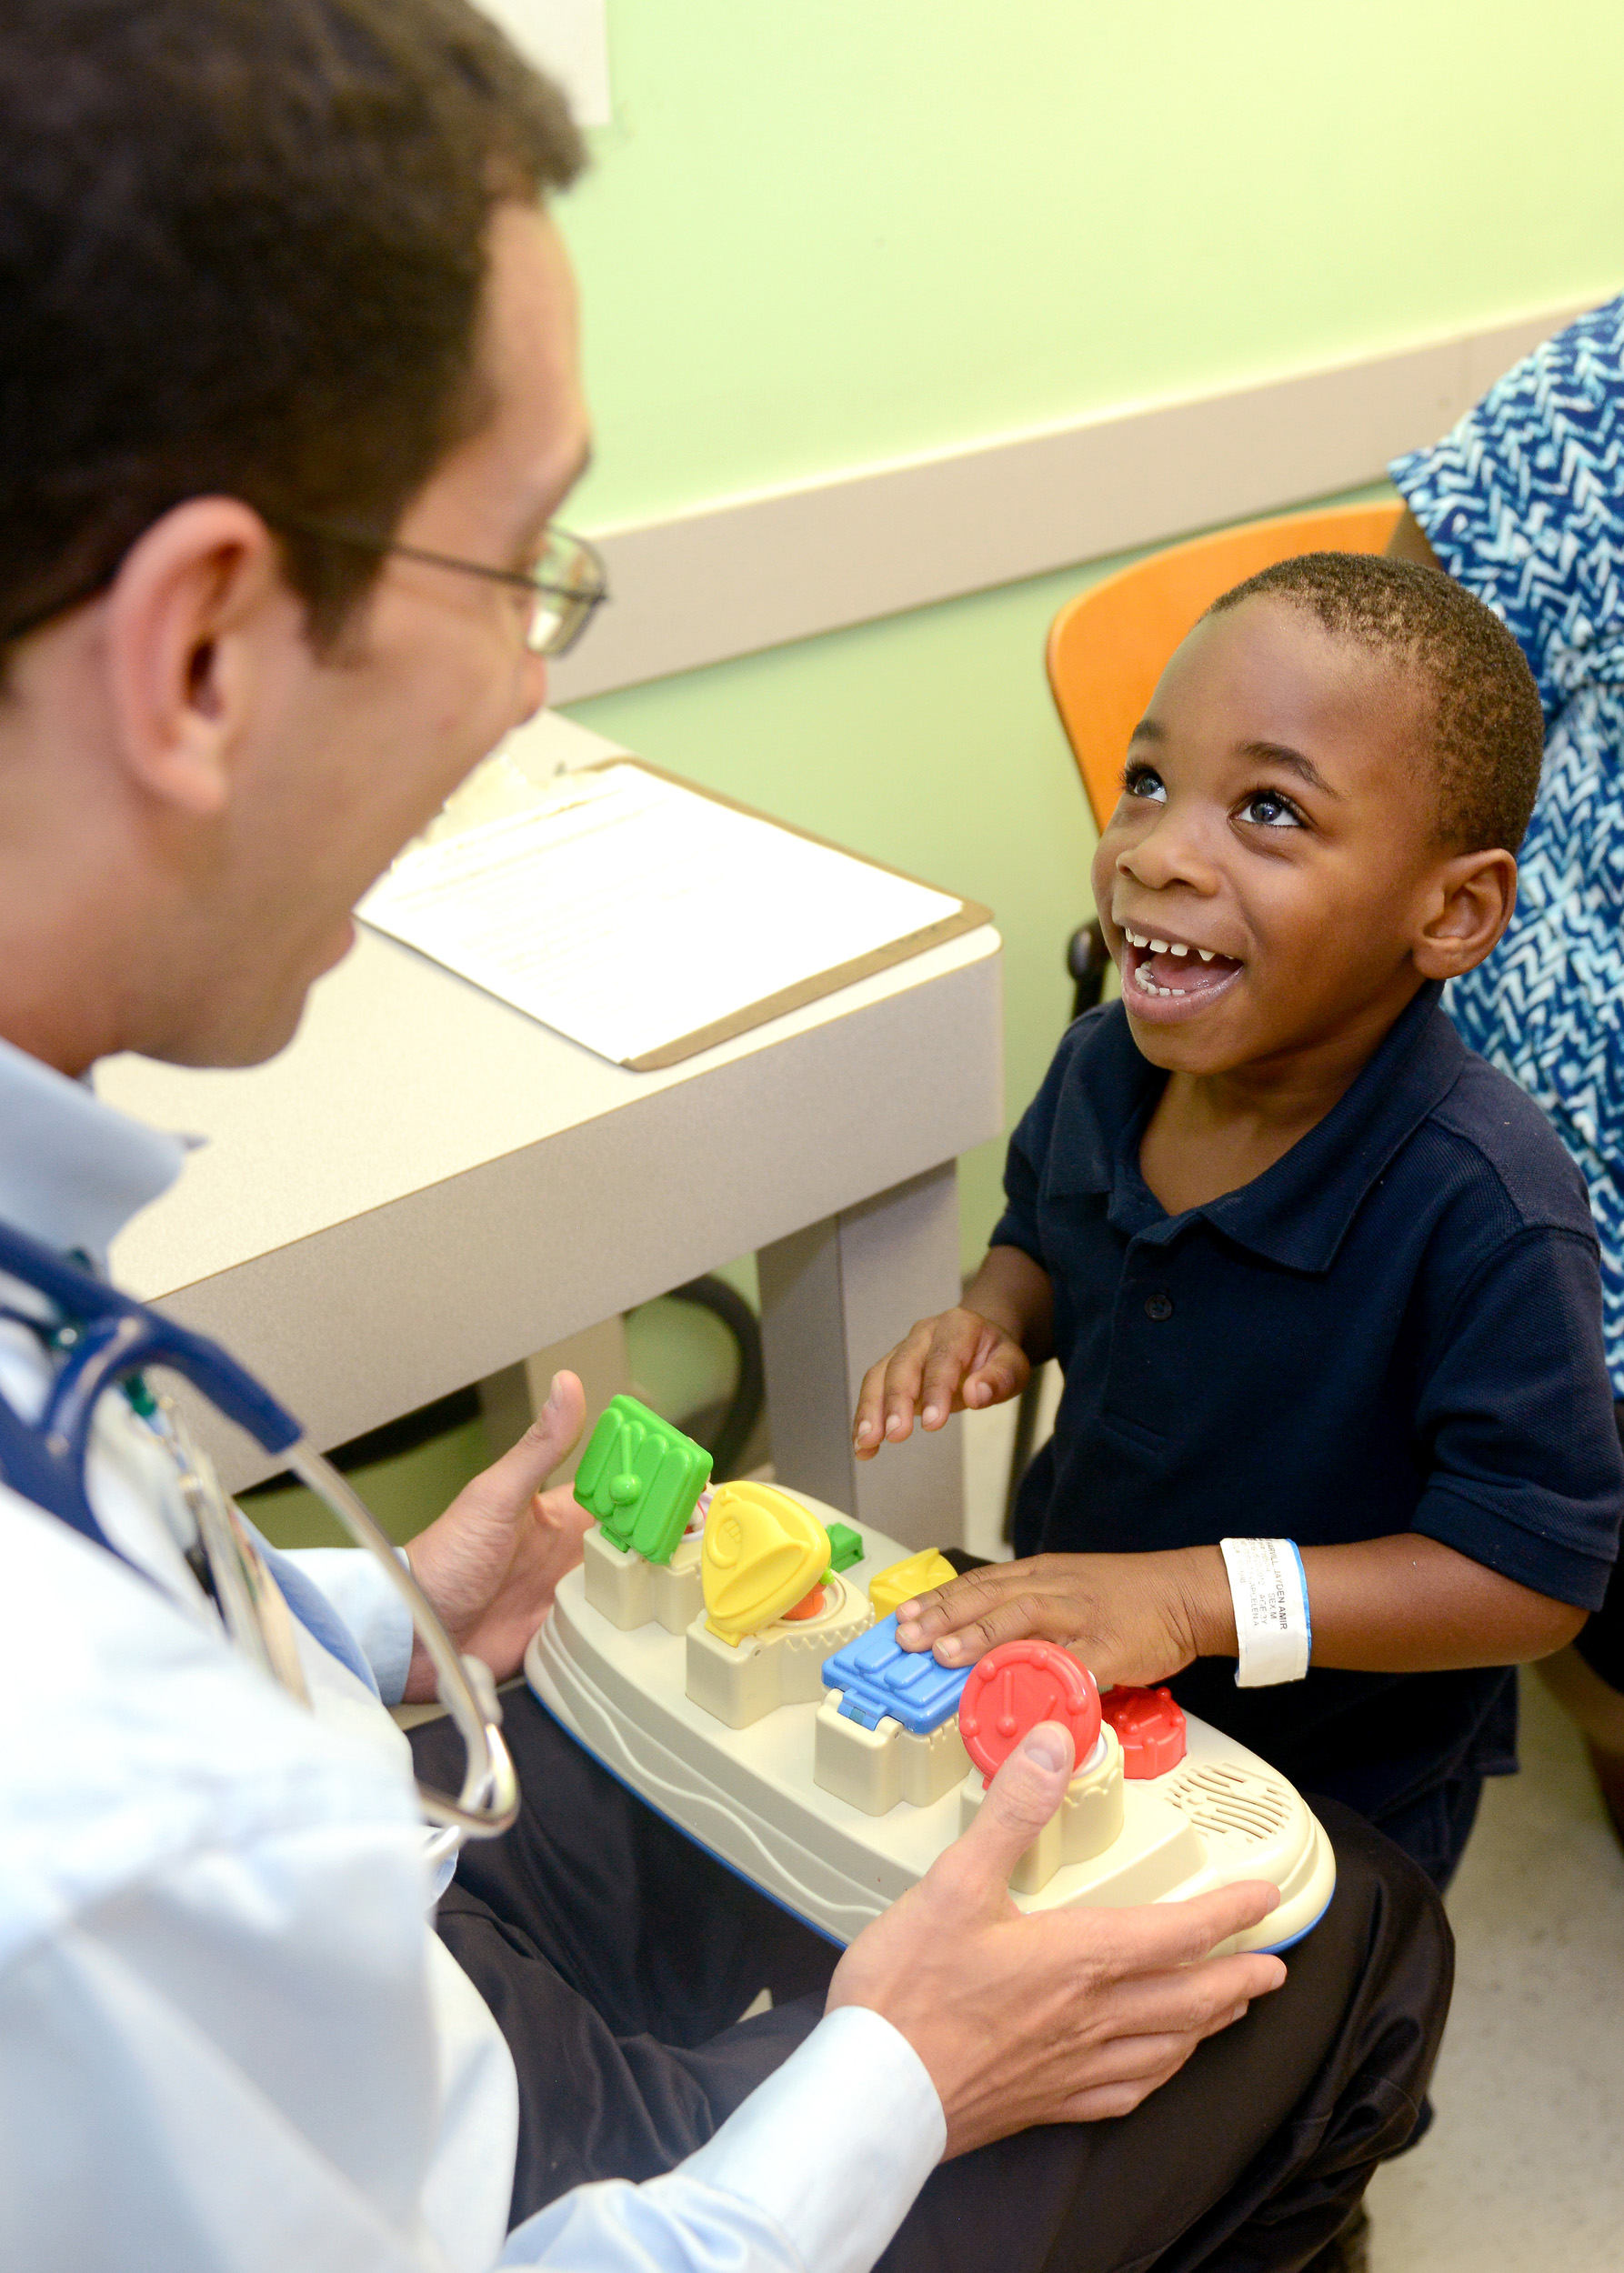 Dr. Justin Schwartz works with Jayden Harvill in one of the clinics at Children's of Alabama in Birmingham. (Denise McGill/Children's of Alabama).